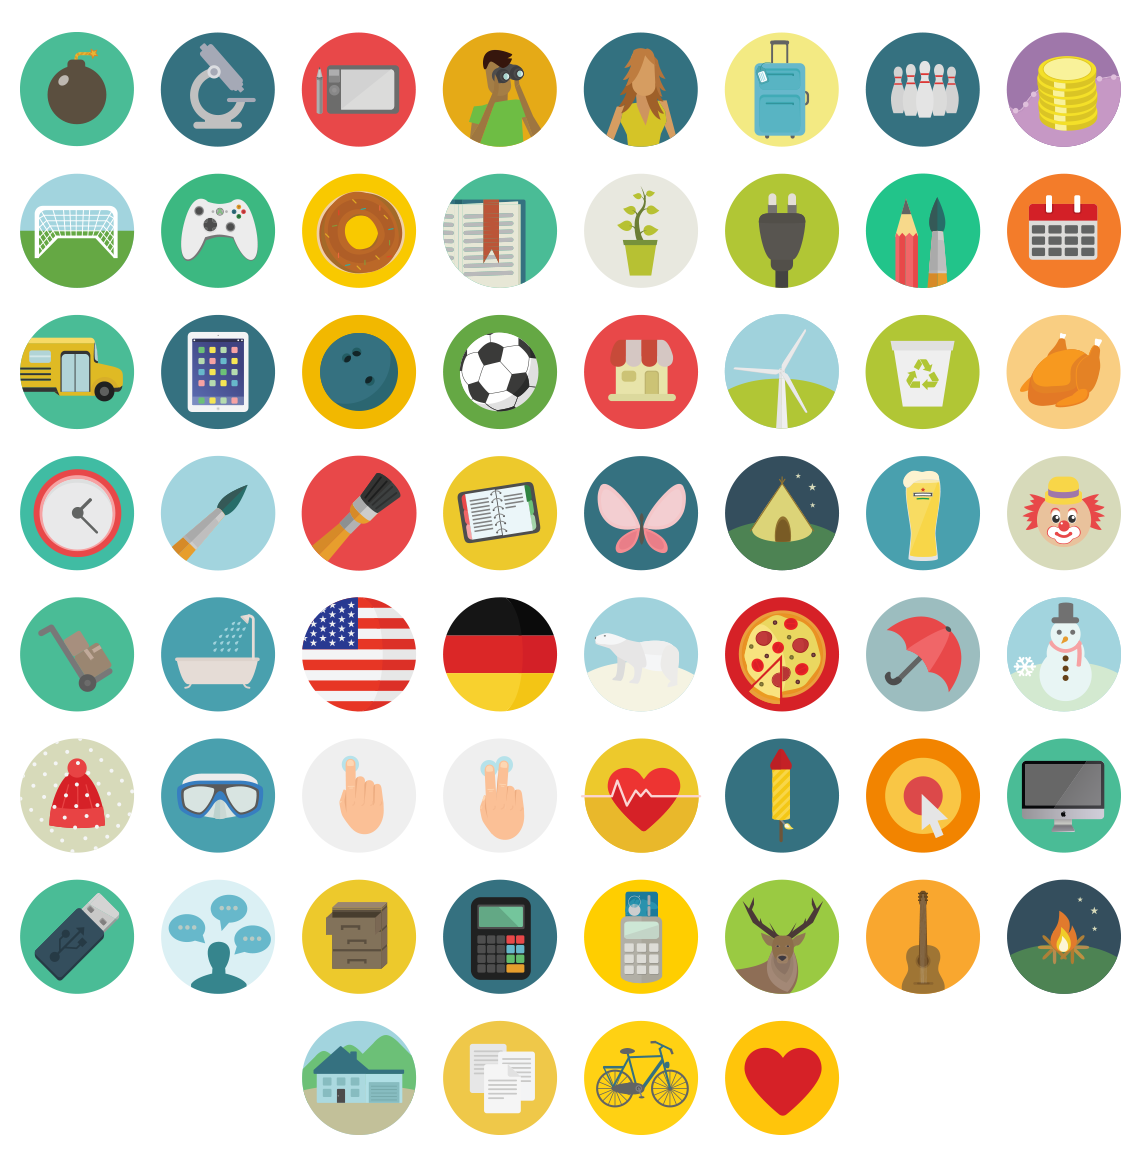 18 Free Flat Icon Sets Images